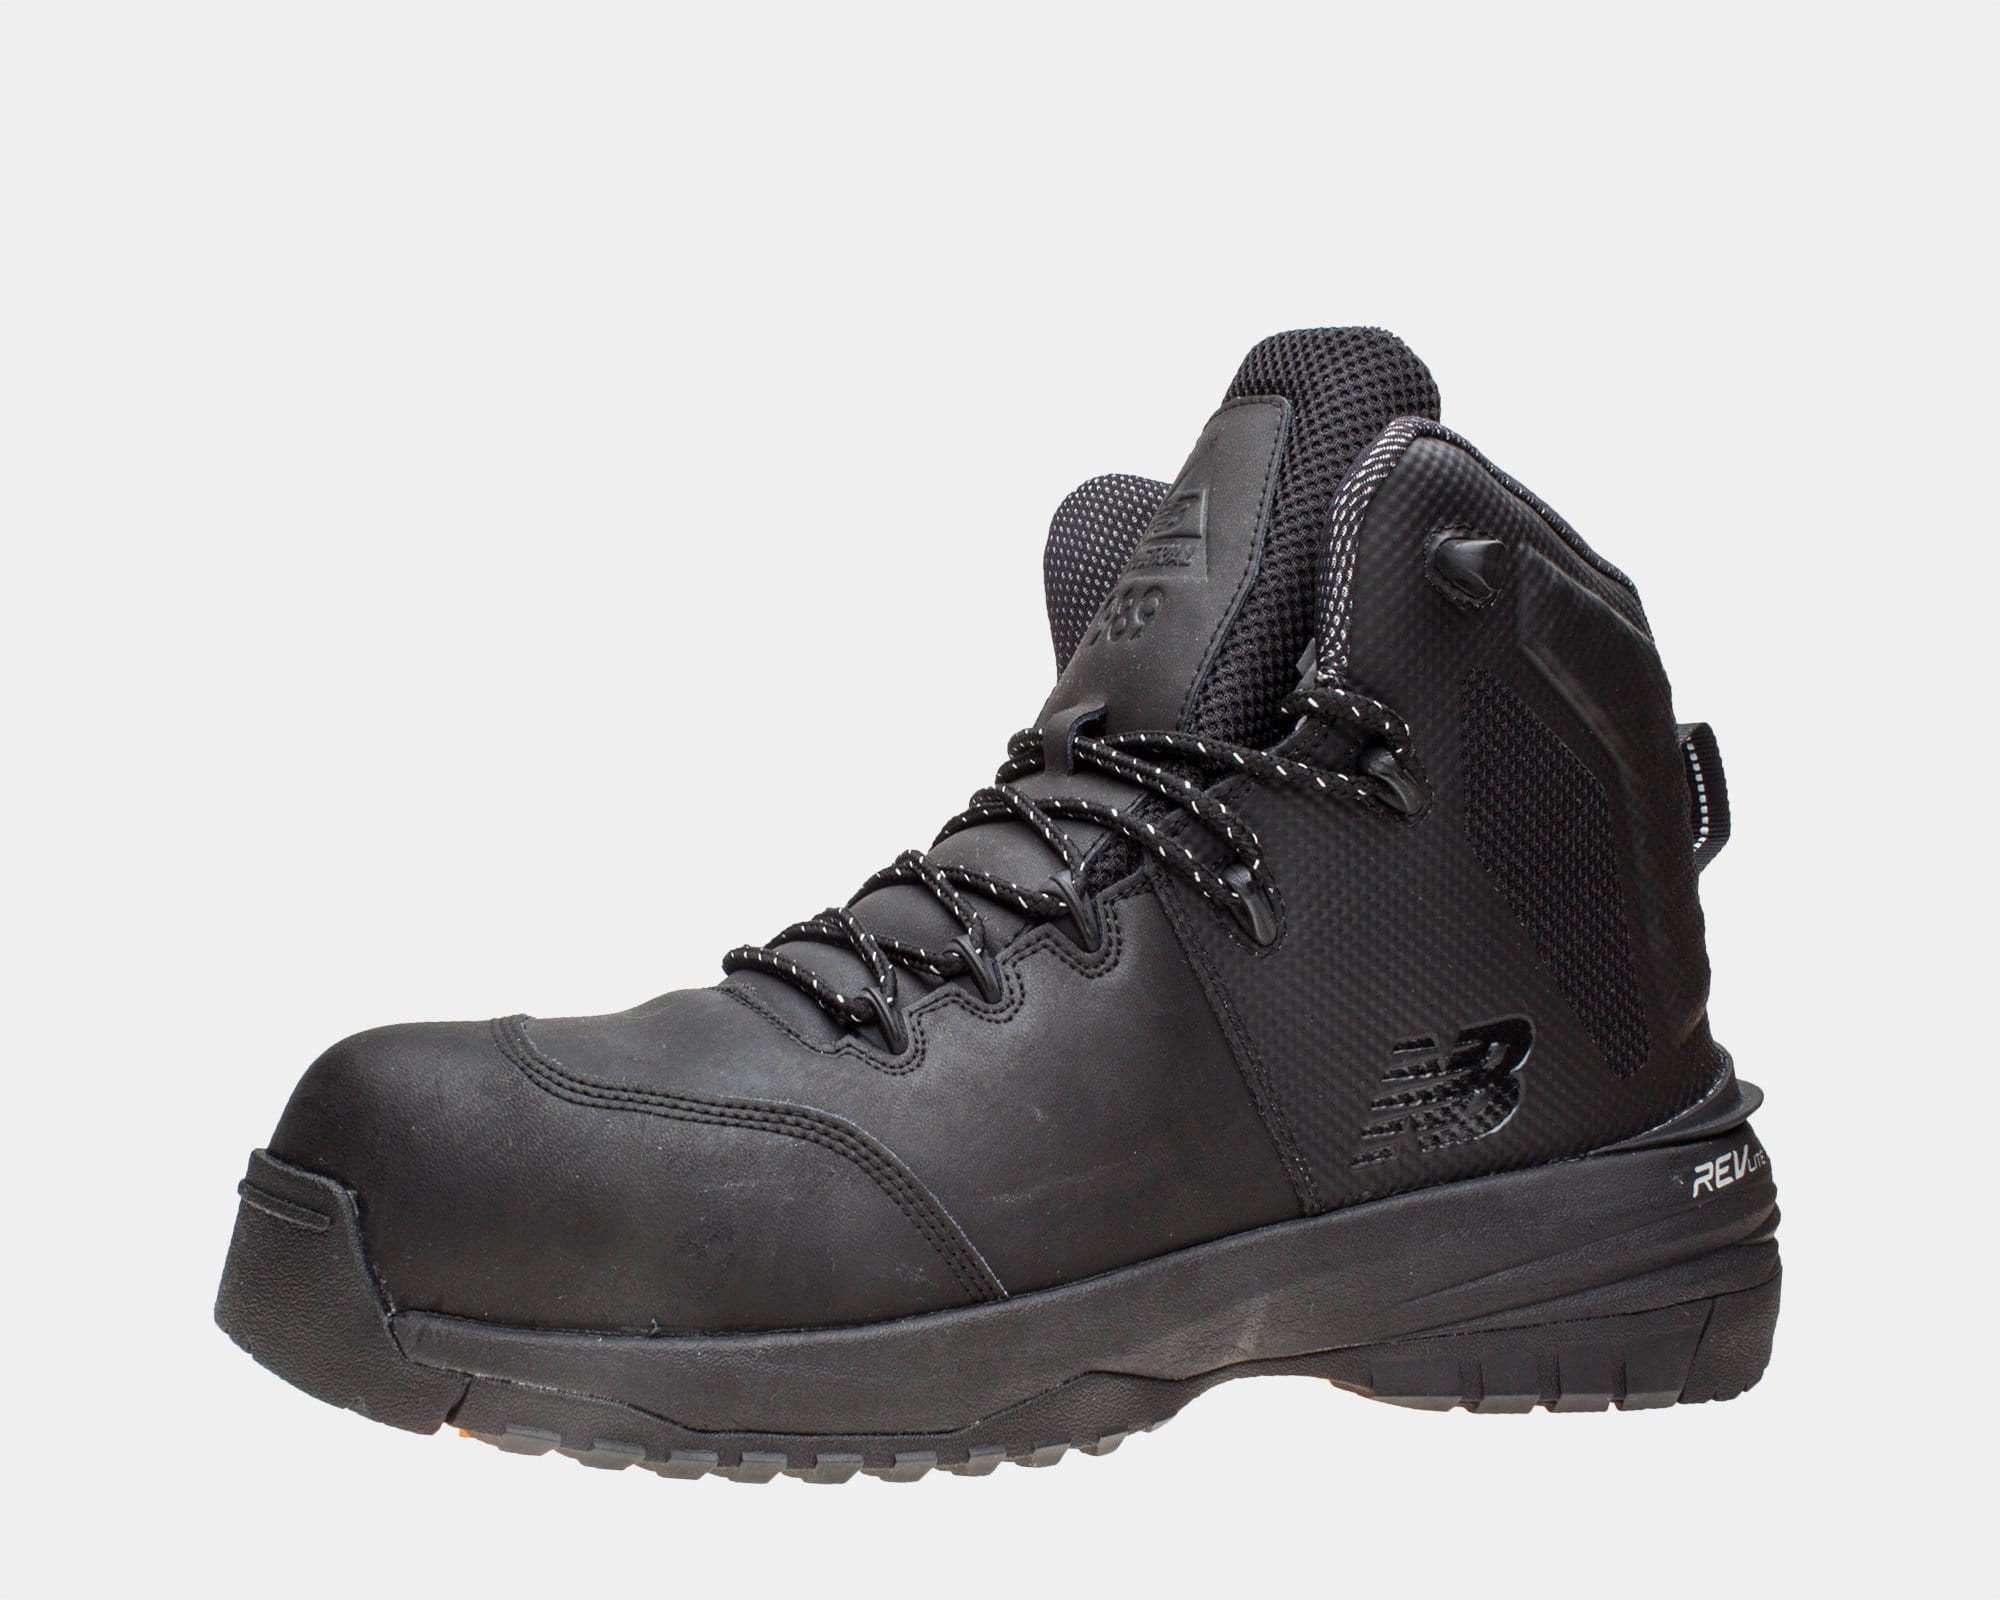 d89f569bc592c New Balance 989 Safety Toe Boots - Mens Large Sizes